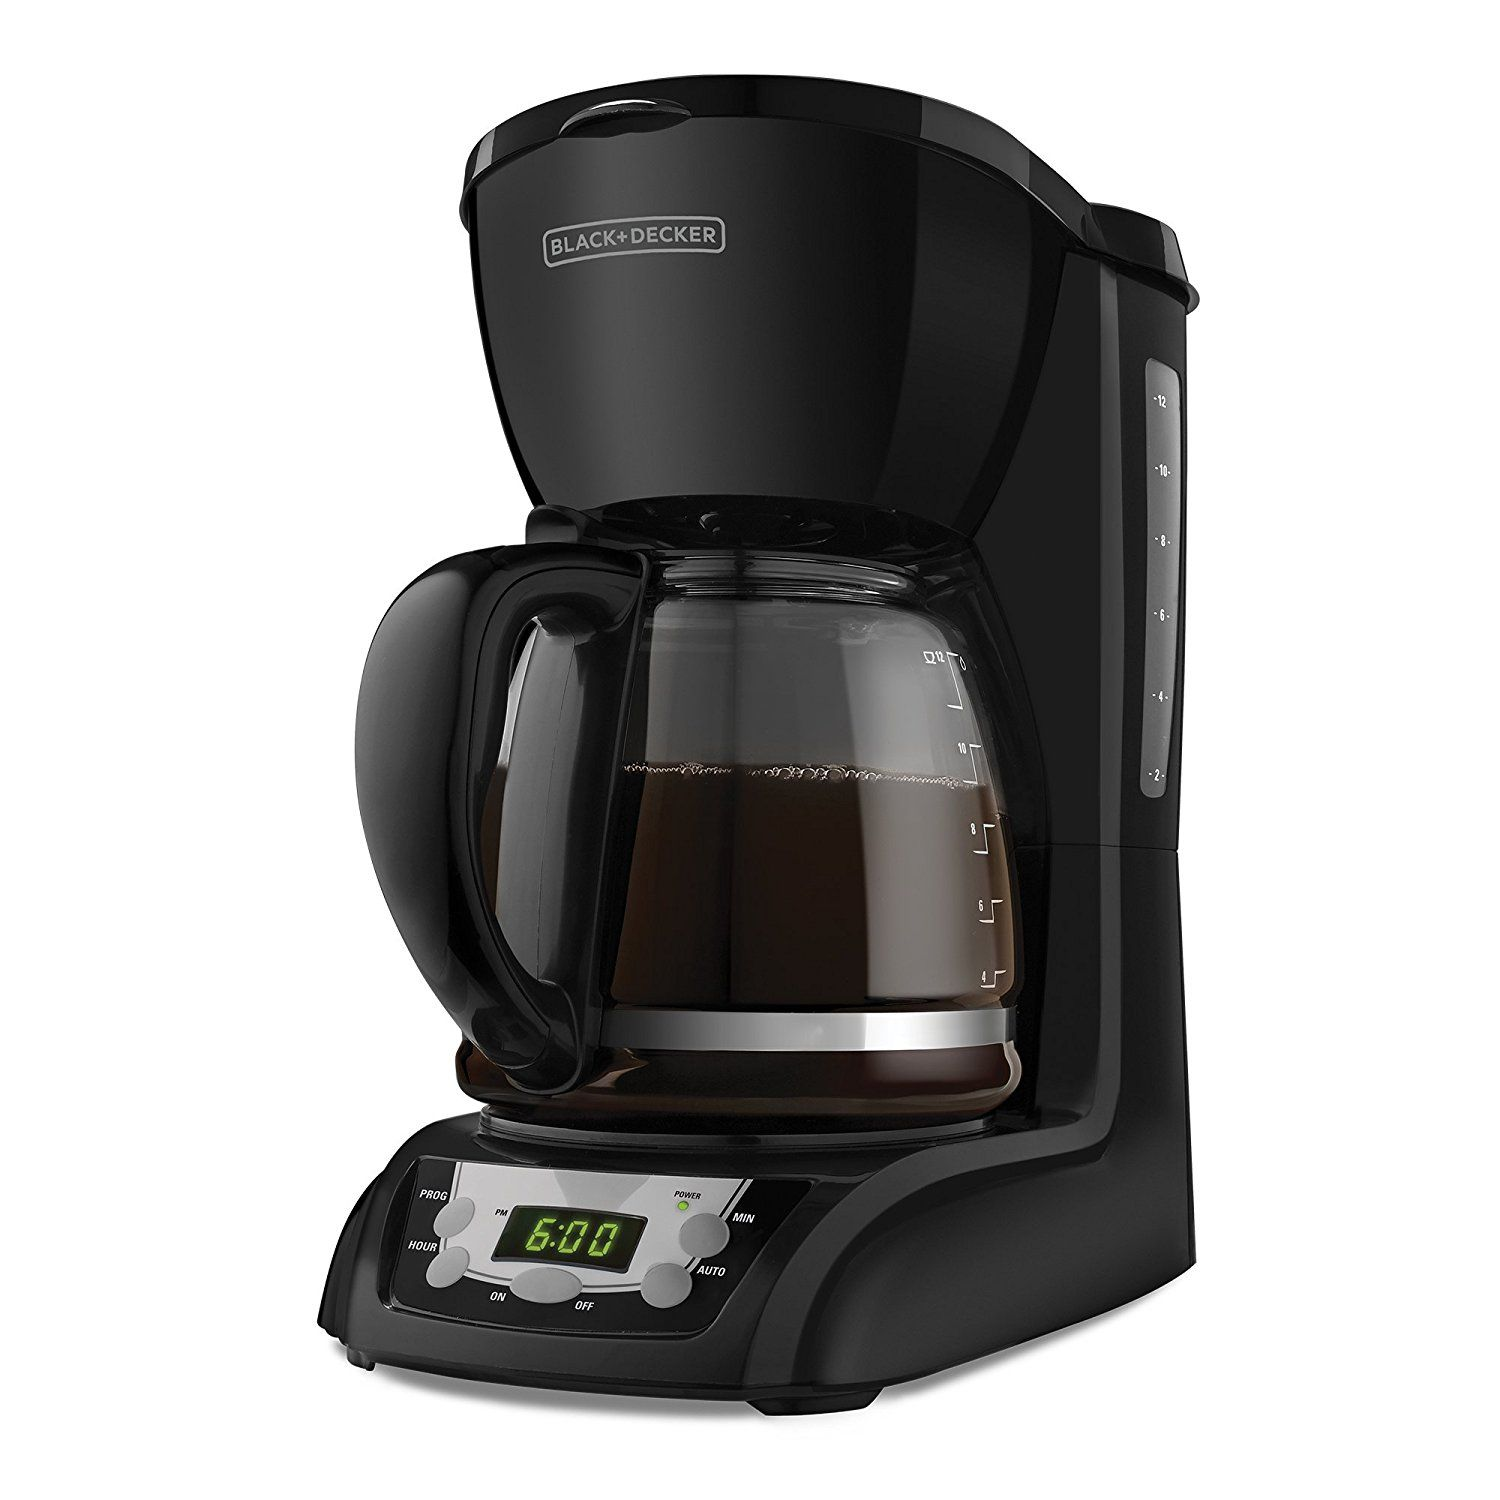 Black Decker DLX1050B 12Cup Programmable Coffeemaker with